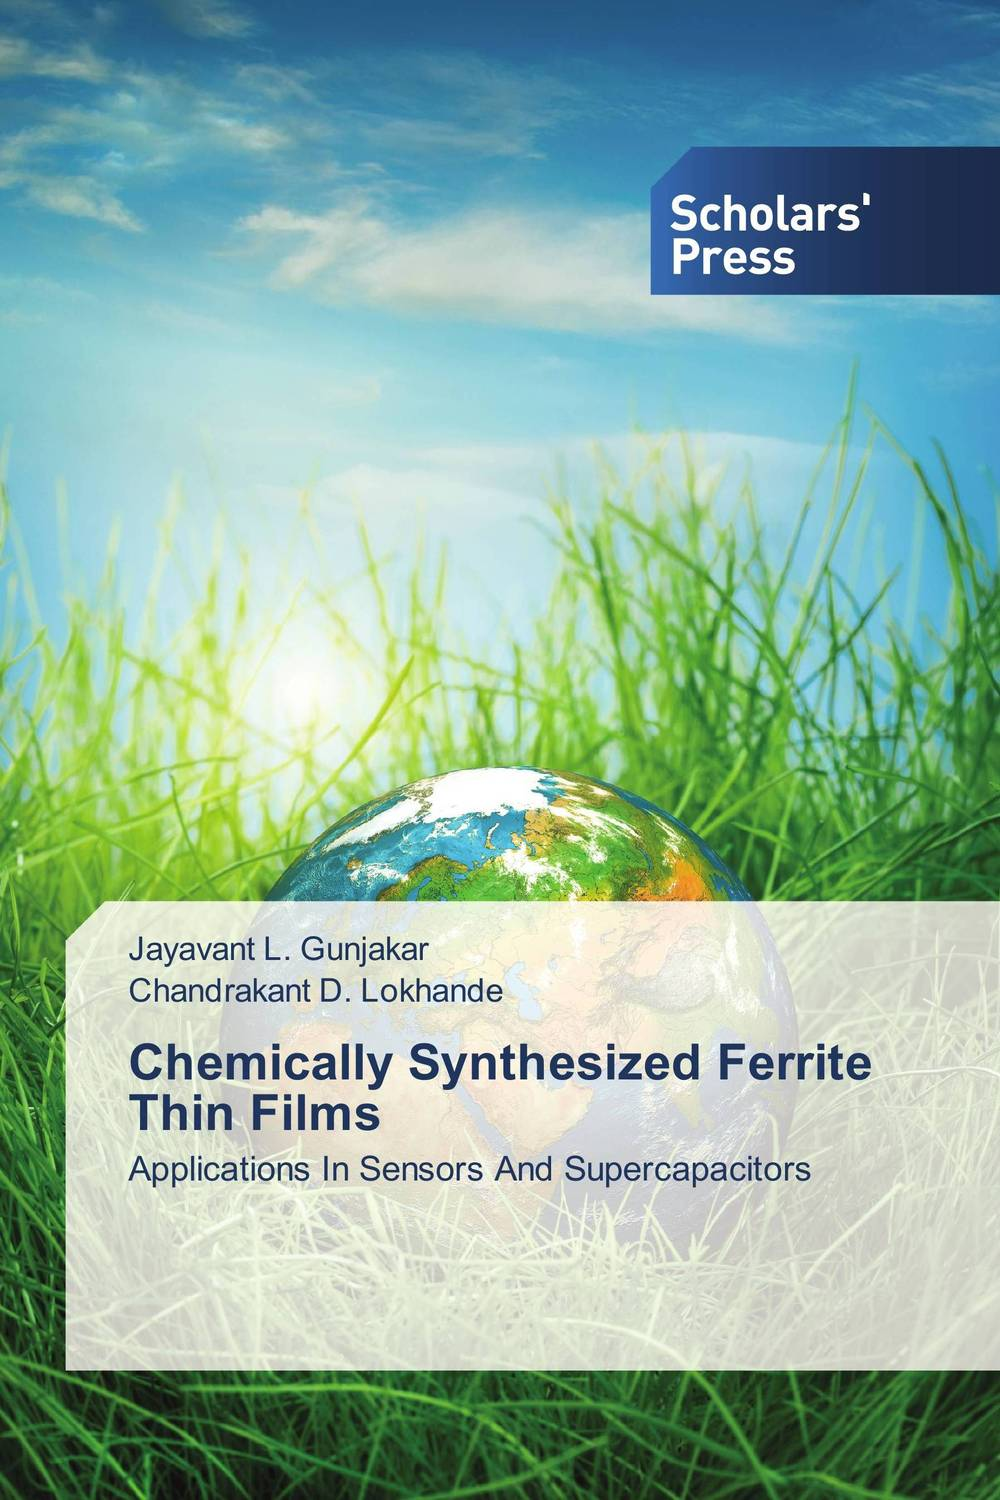 Chemically Synthesized Ferrite Thin Films